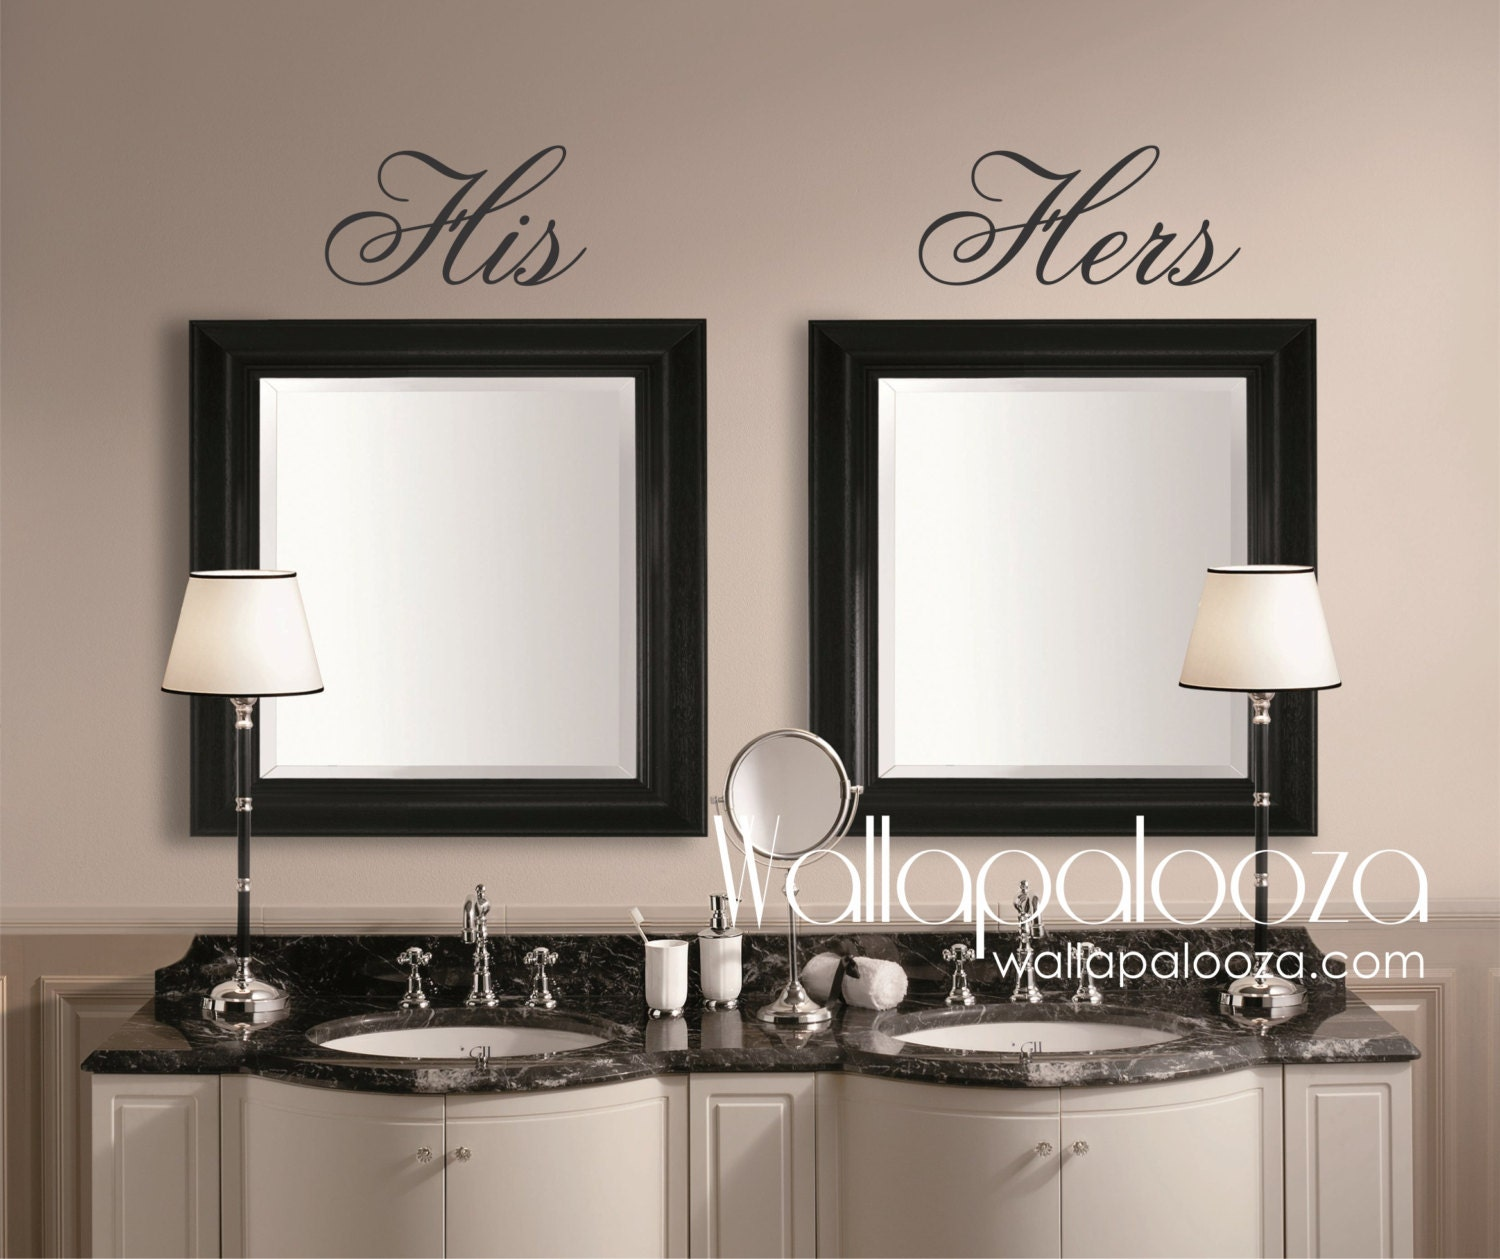 His and hers wall decal mirror decal his by wallapaloozadecals for Mirror stickers